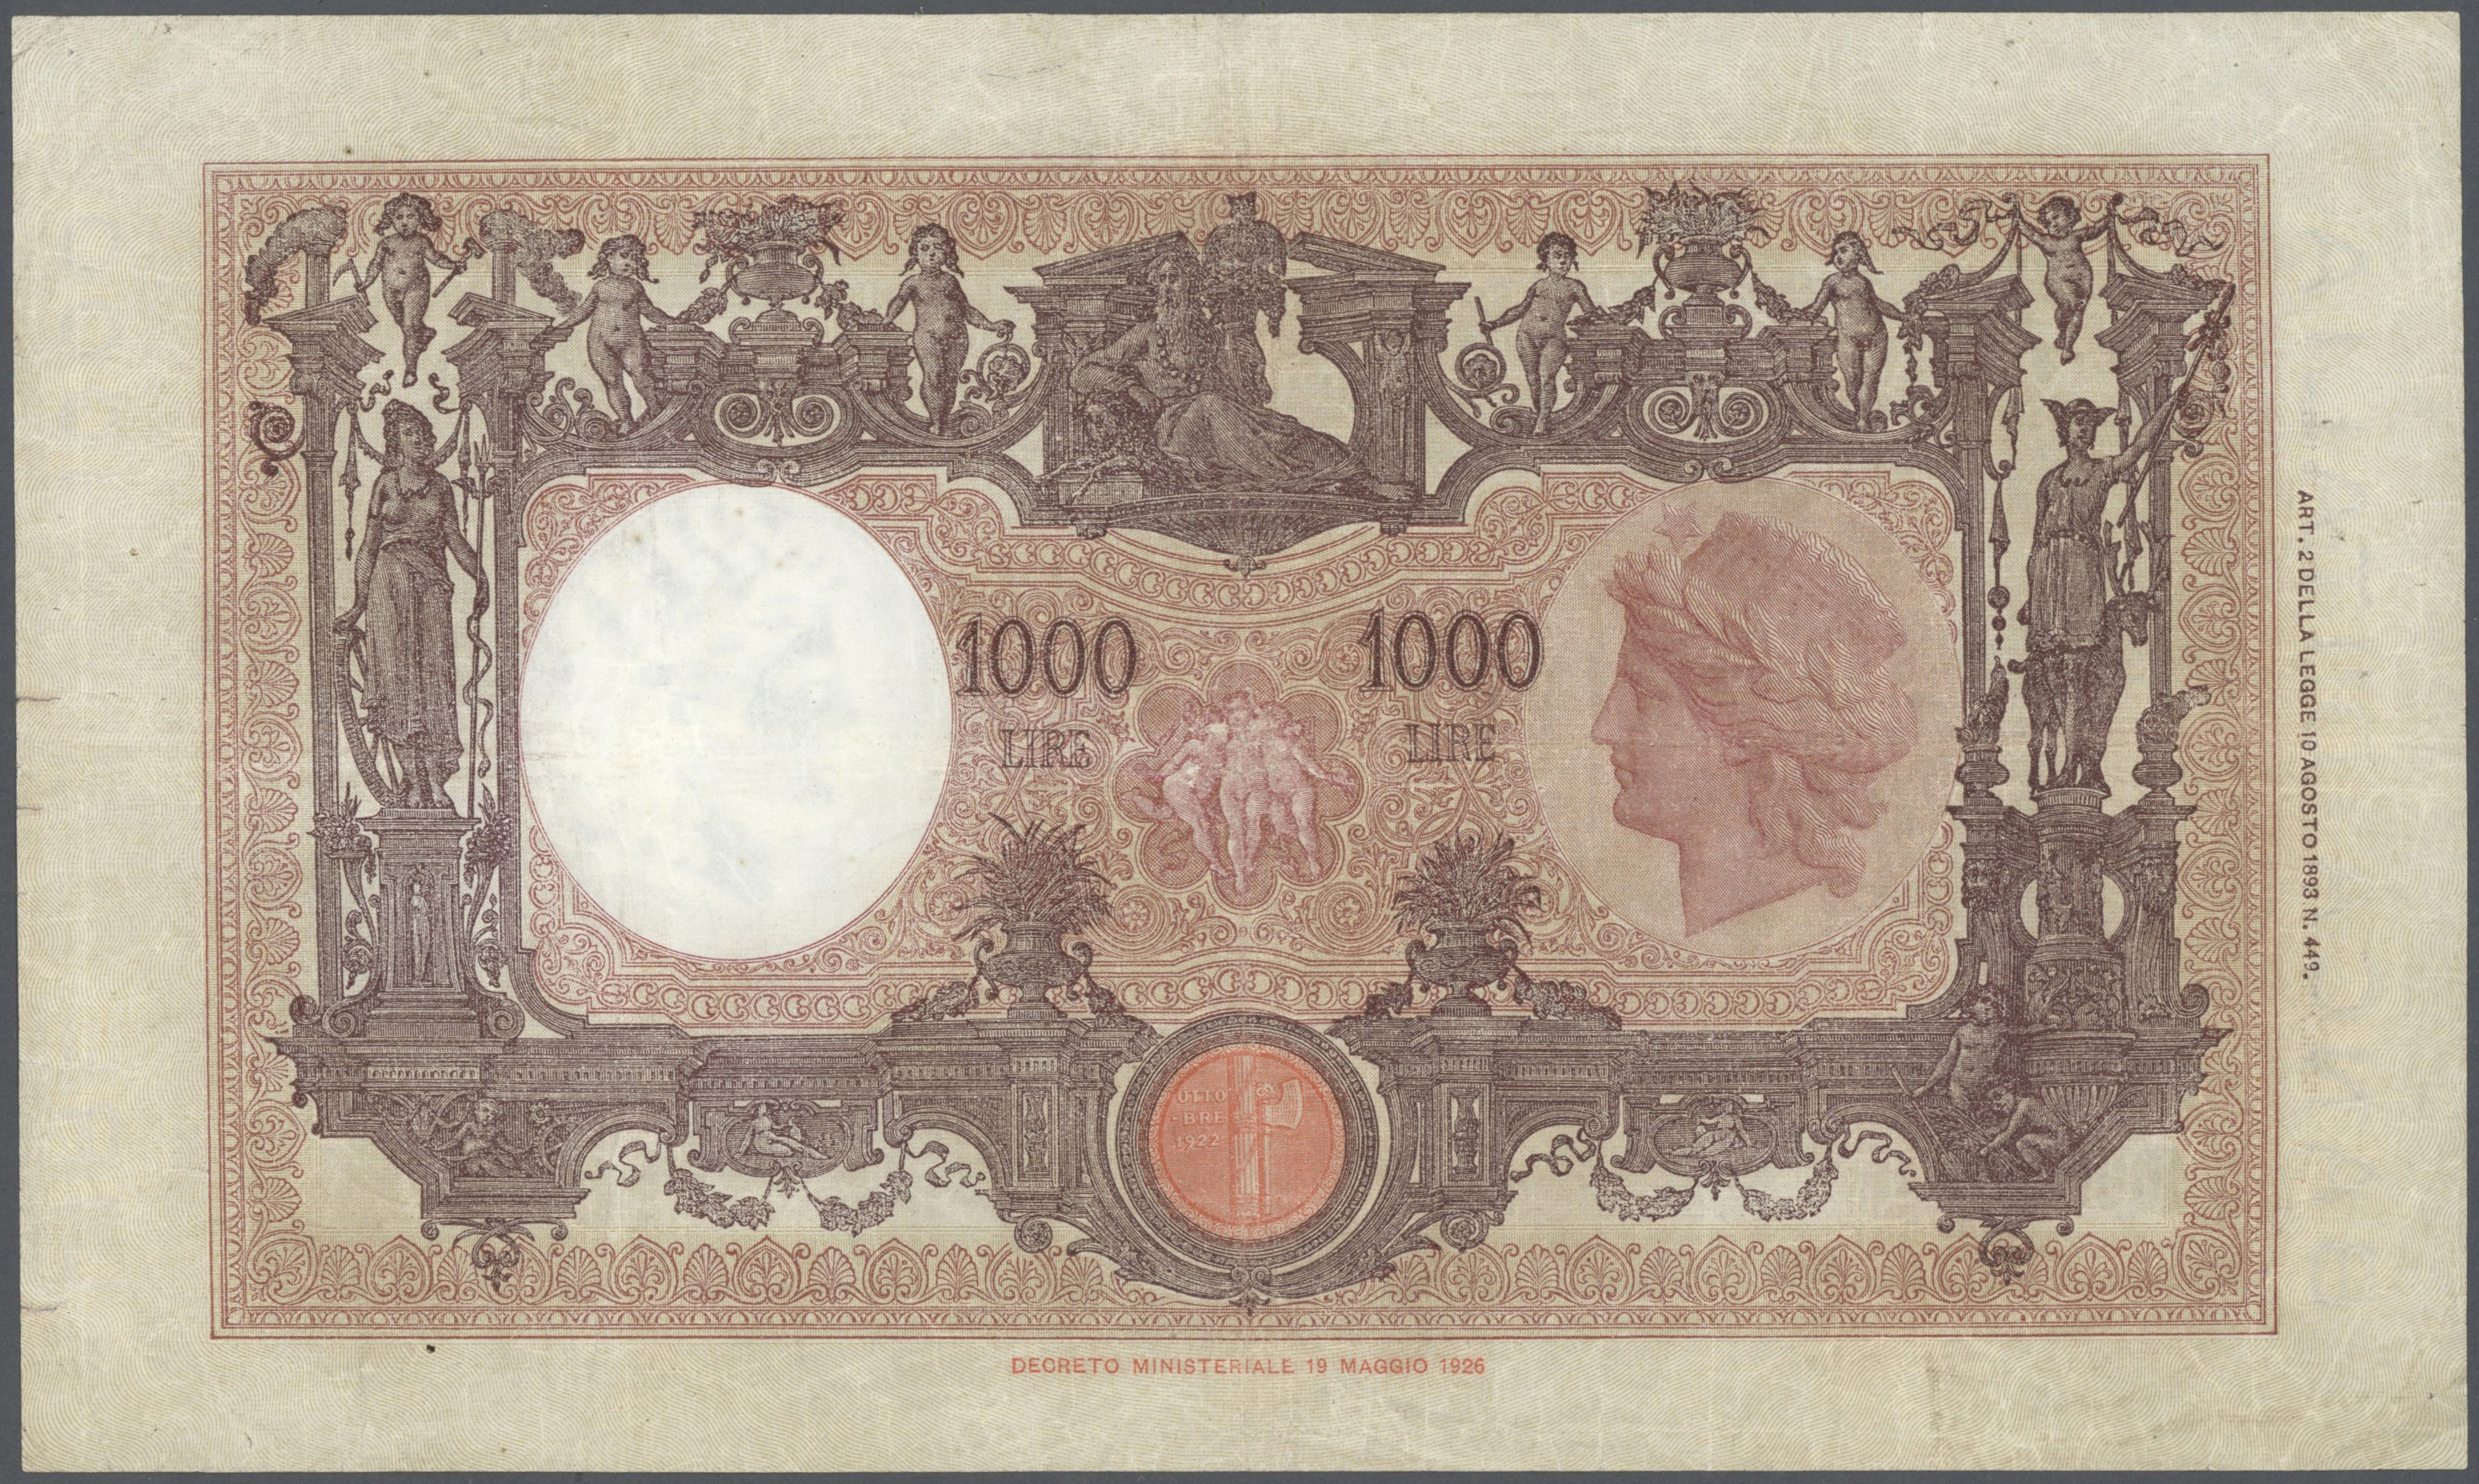 Lot 00454 - Italy / Italien | Banknoten  -  Auktionshaus Christoph Gärtner GmbH & Co. KG Sale #48 The Banknotes